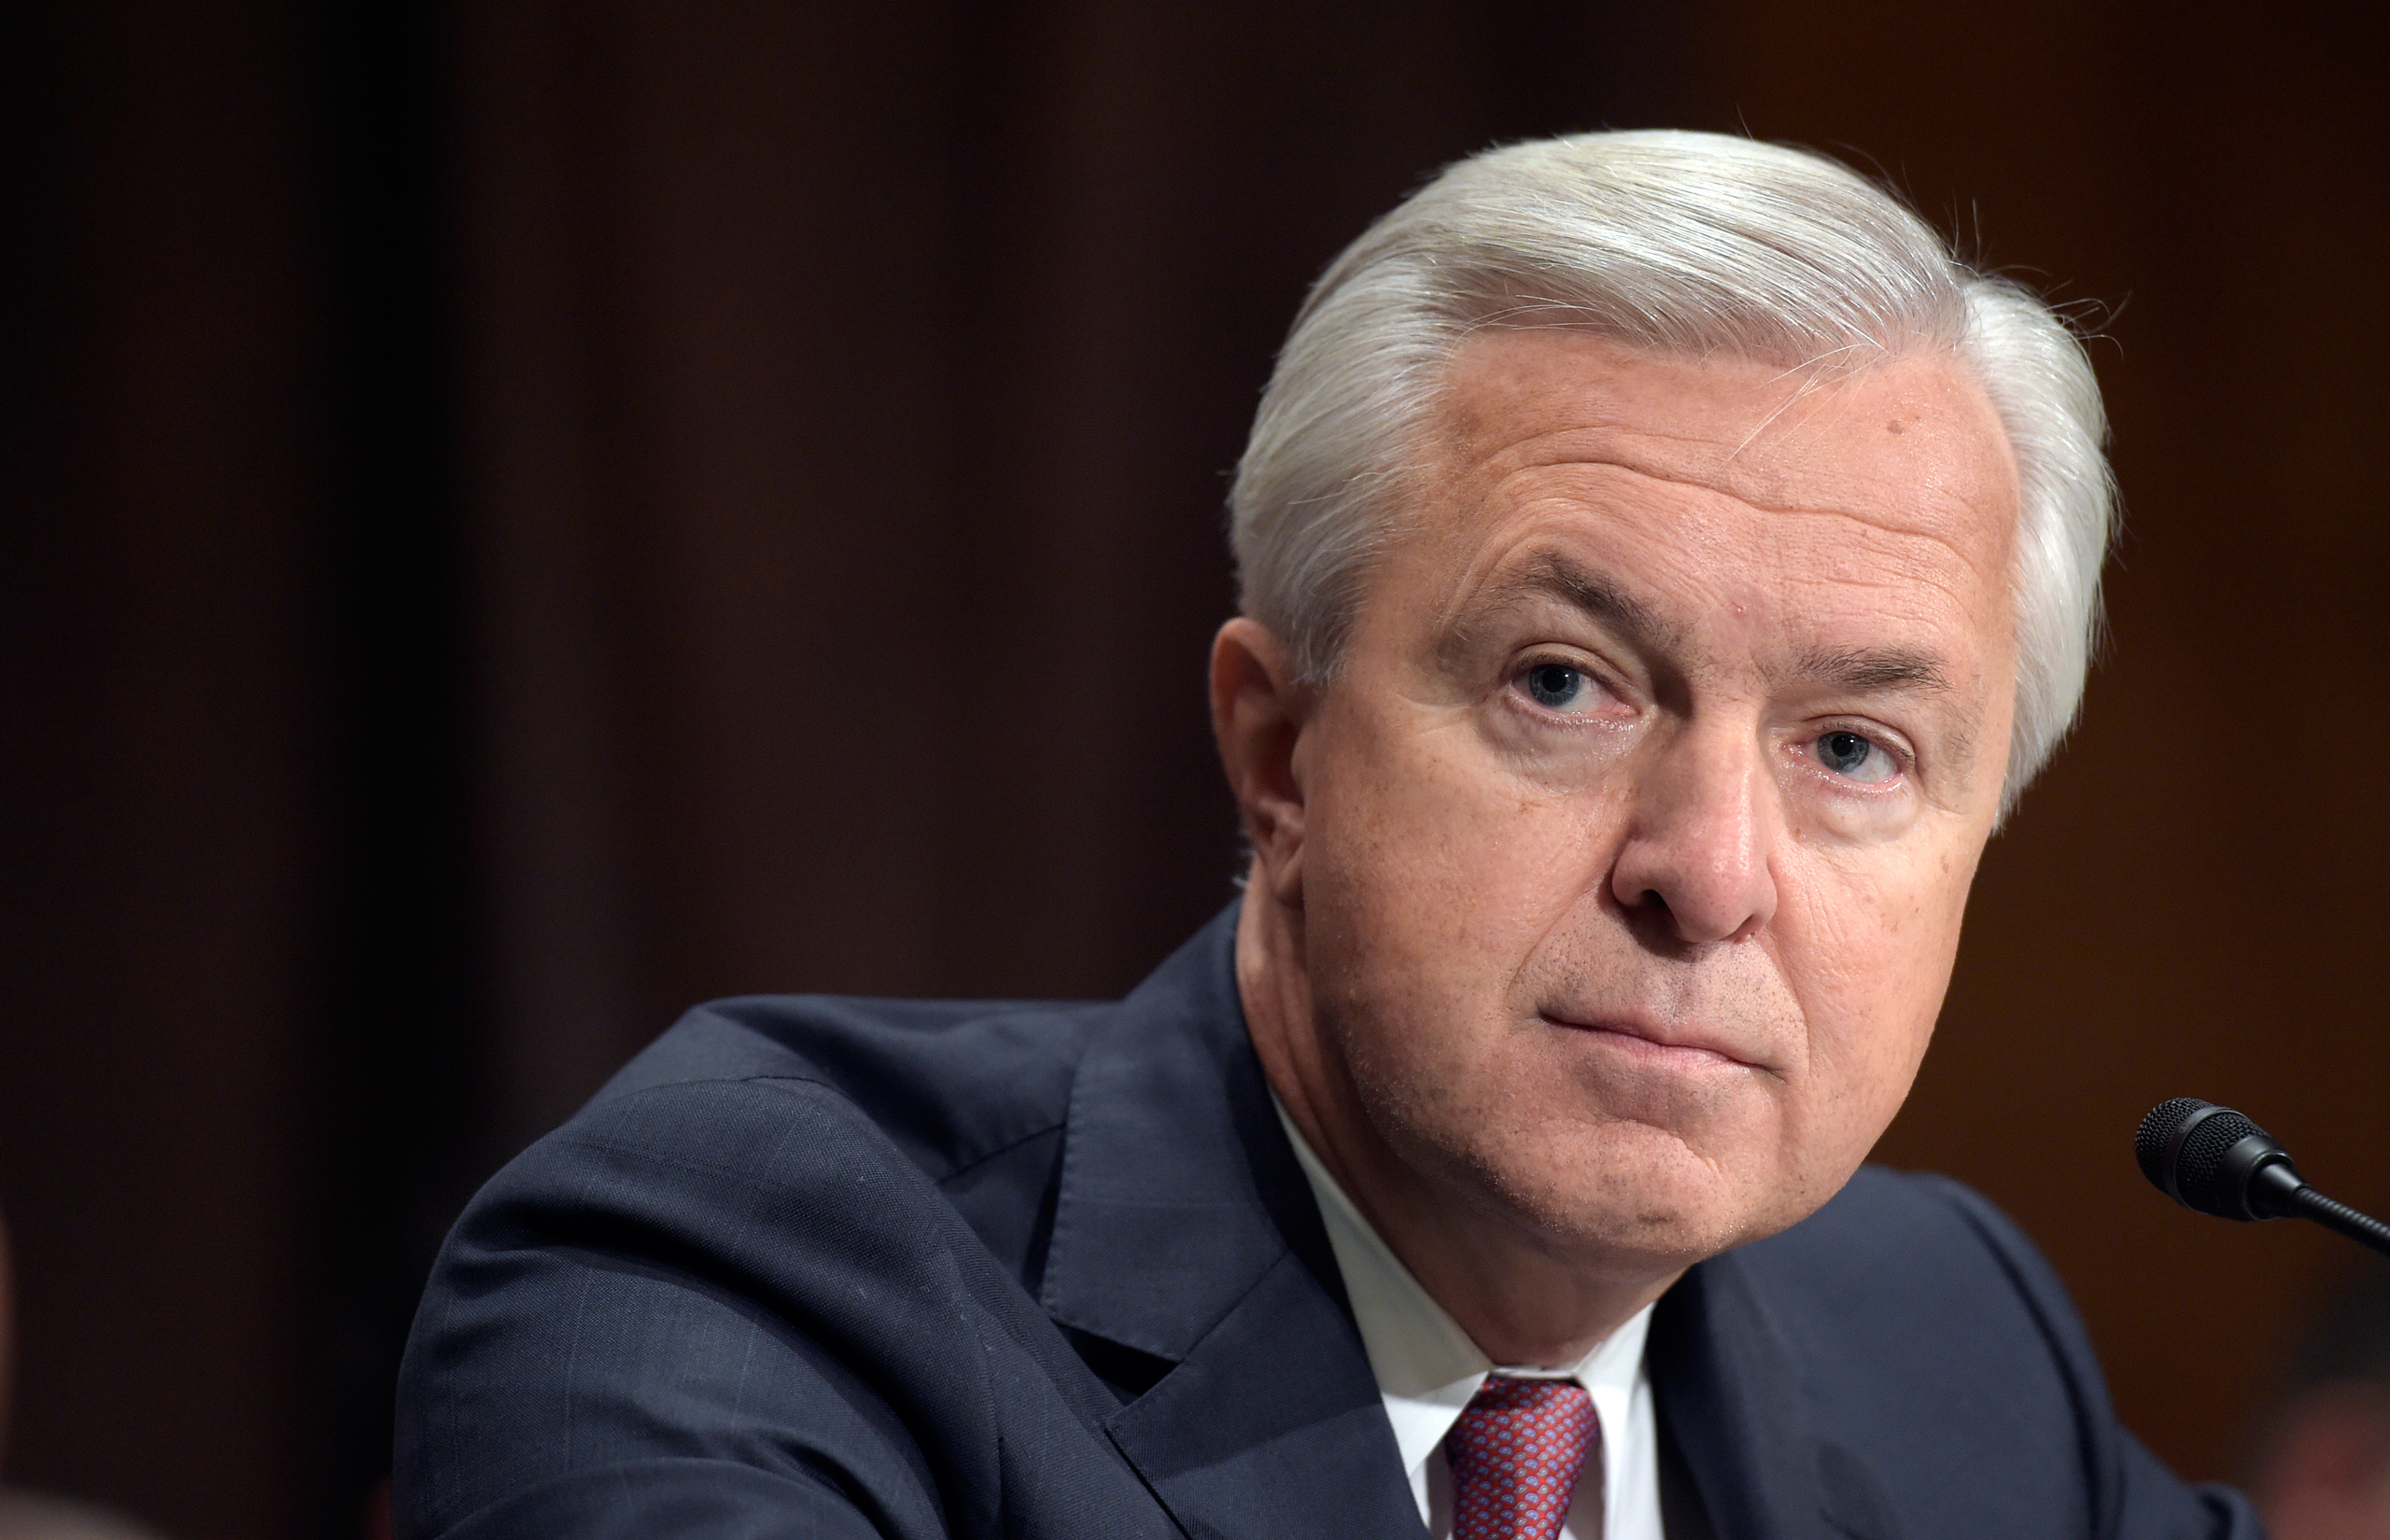 Wells Fargo CEO John Stumpf testifies on Capitol Hill in Washington on Sept. 20, 2016.